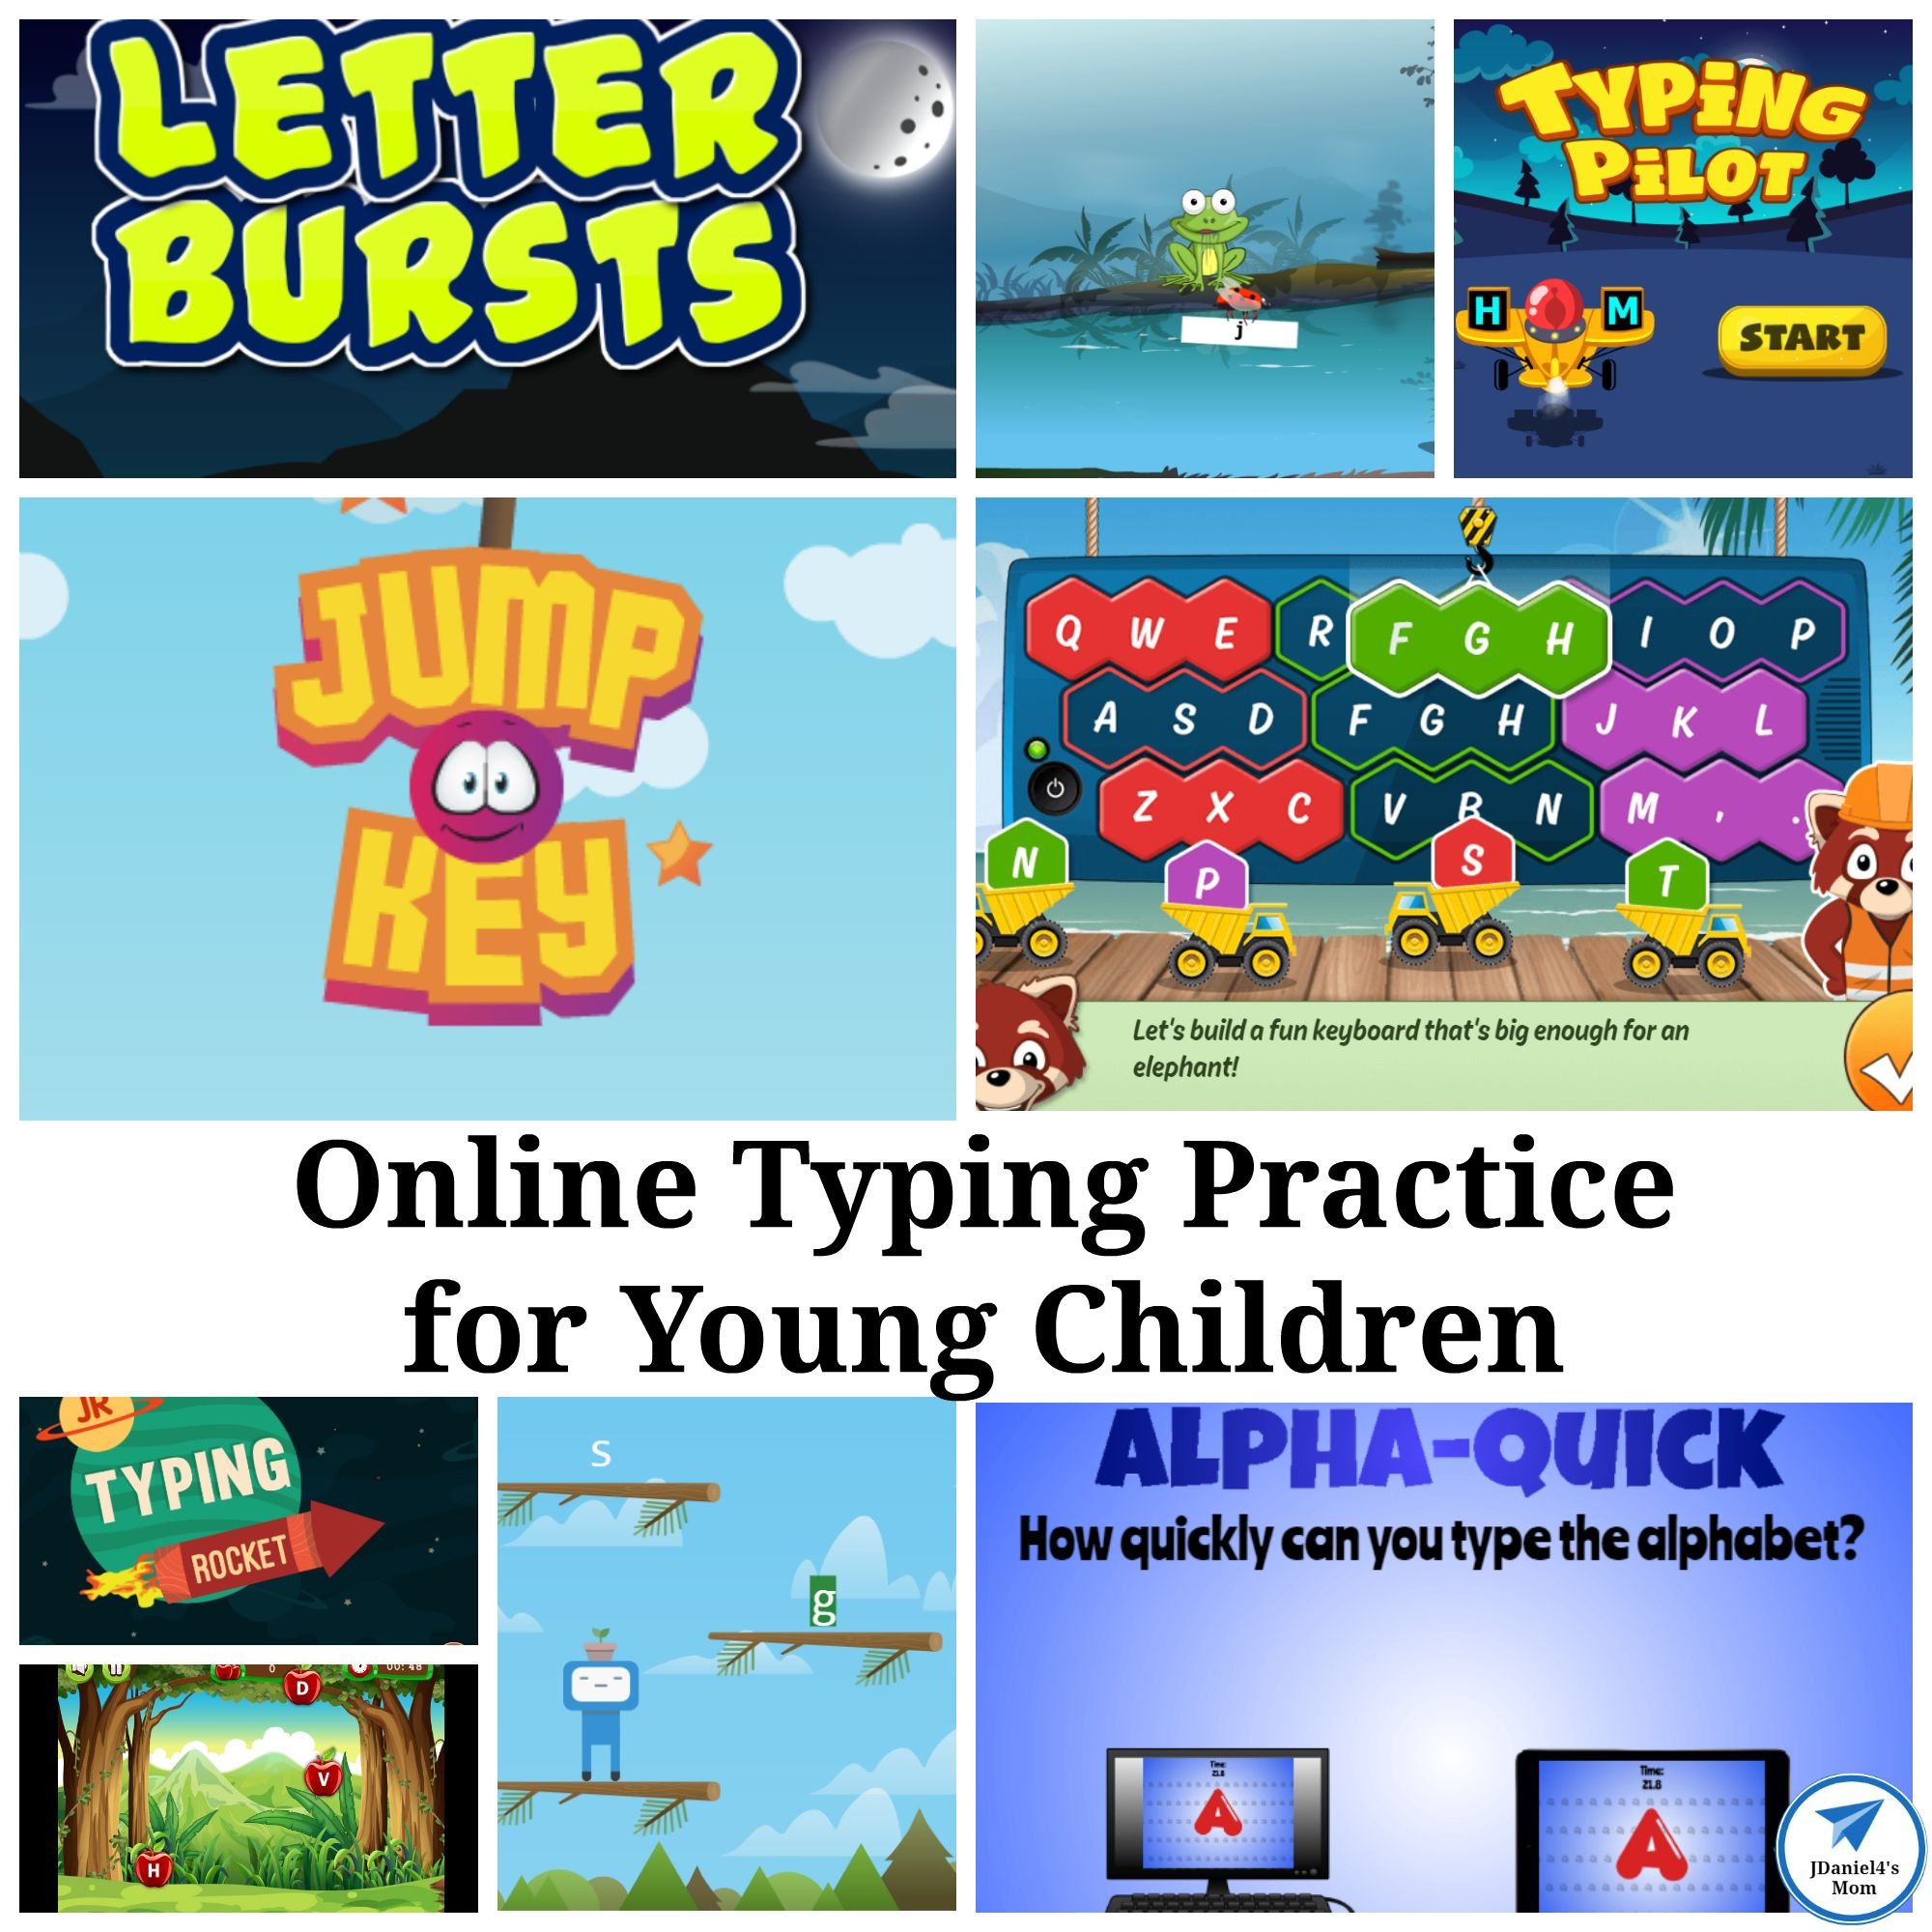 Online Typing Practice For Young Children